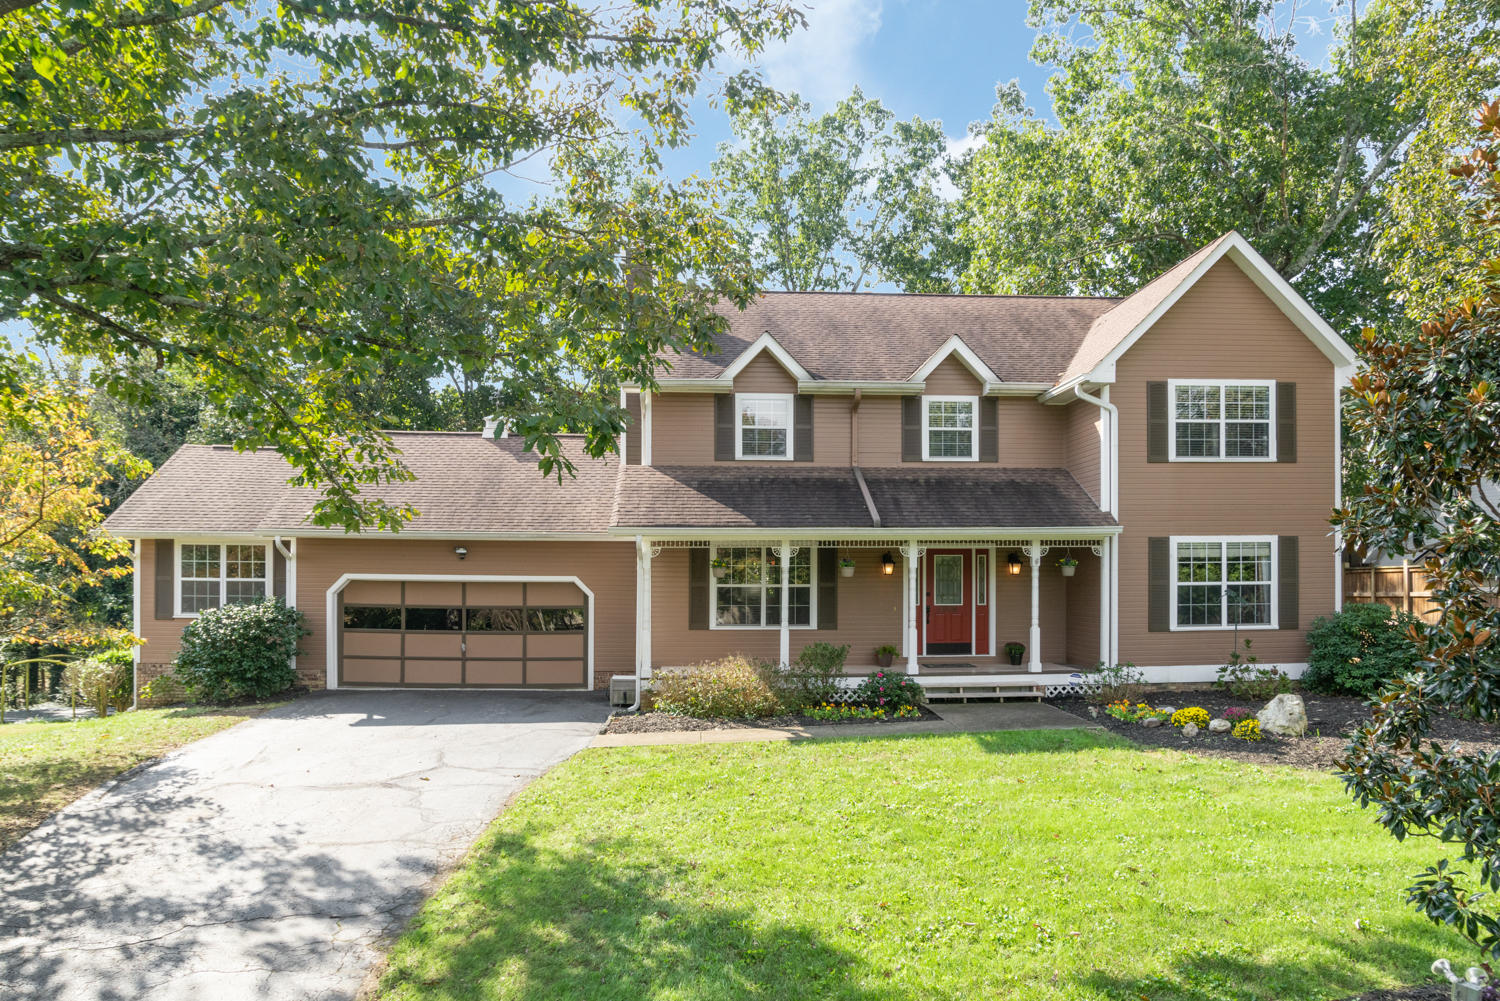 9006 Tennga Ln, Chattanooga, TN 37421